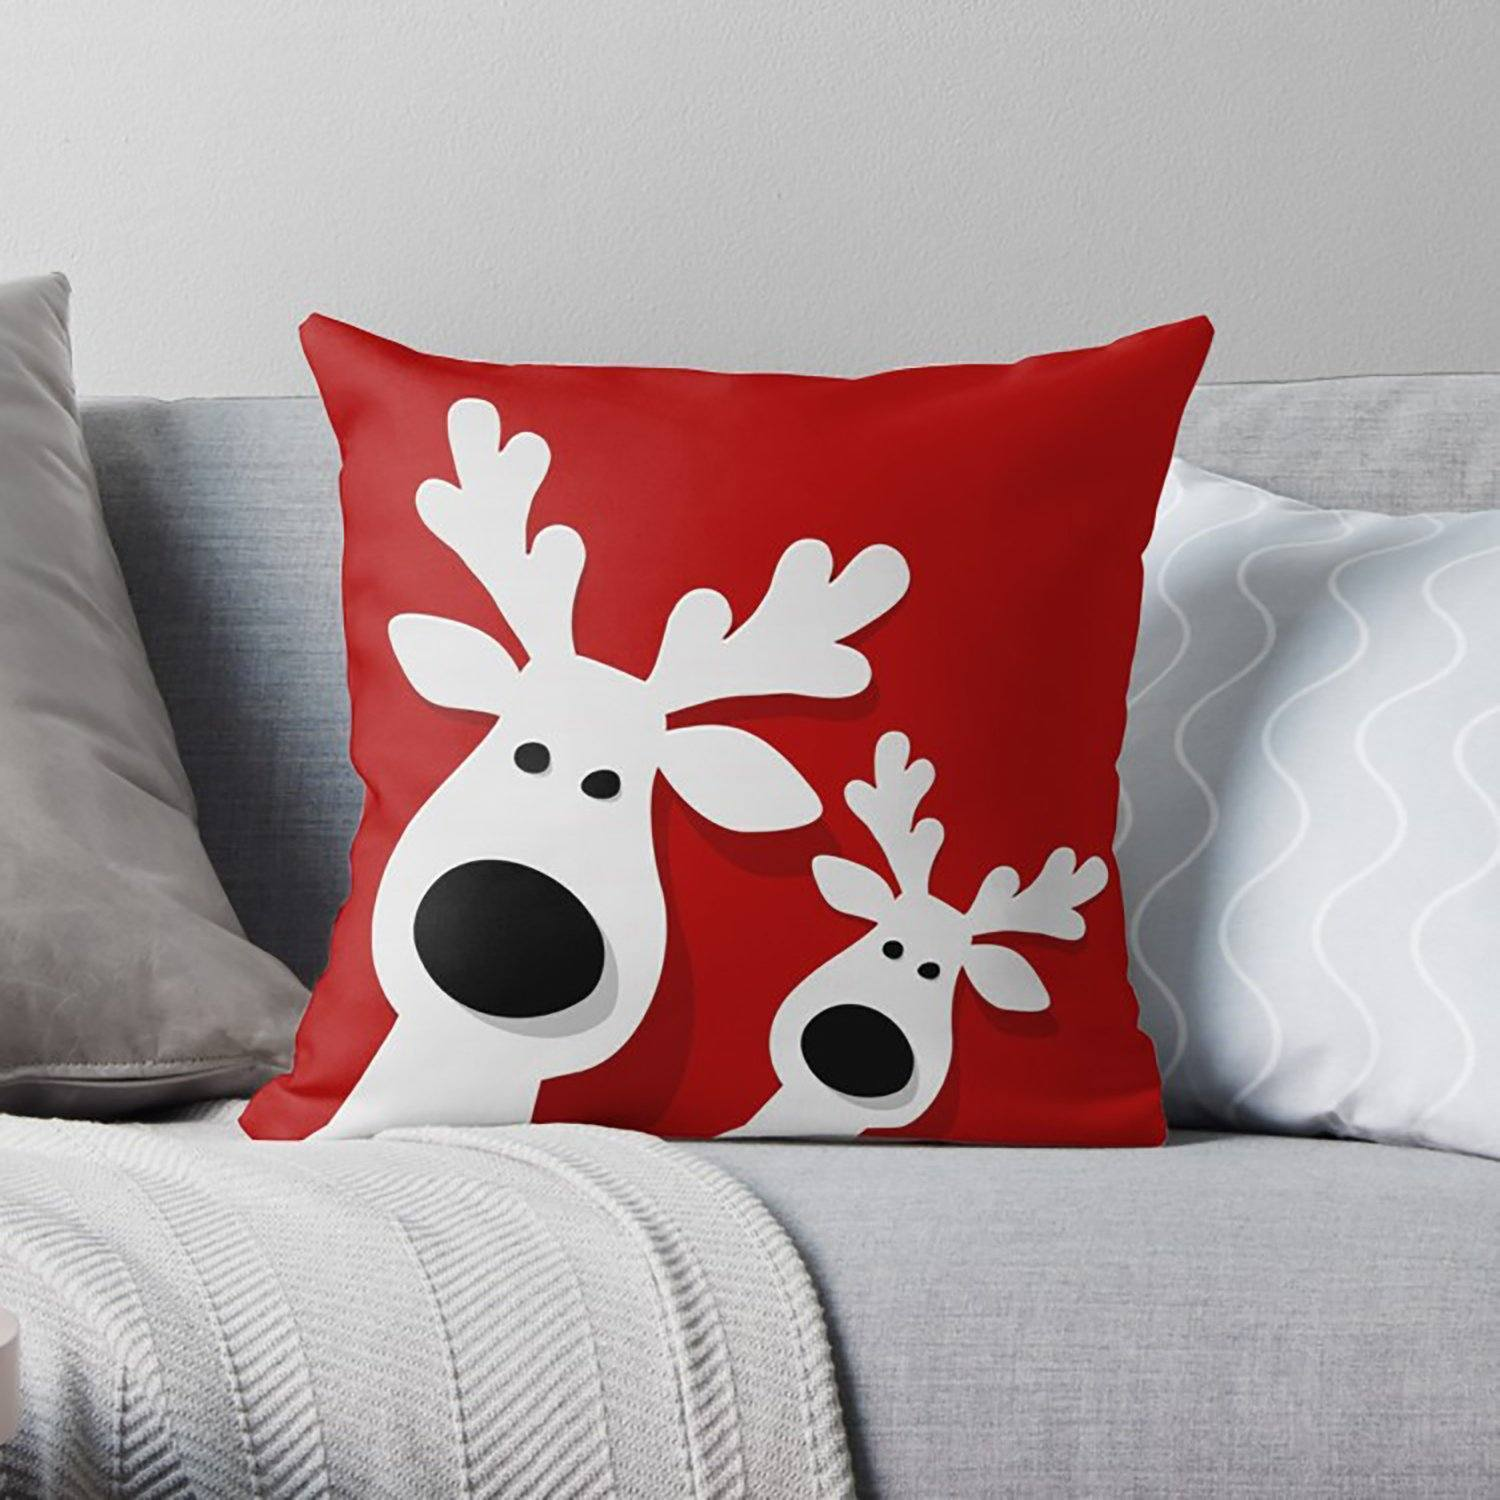 Christmas Pillow-W.FRANCIS